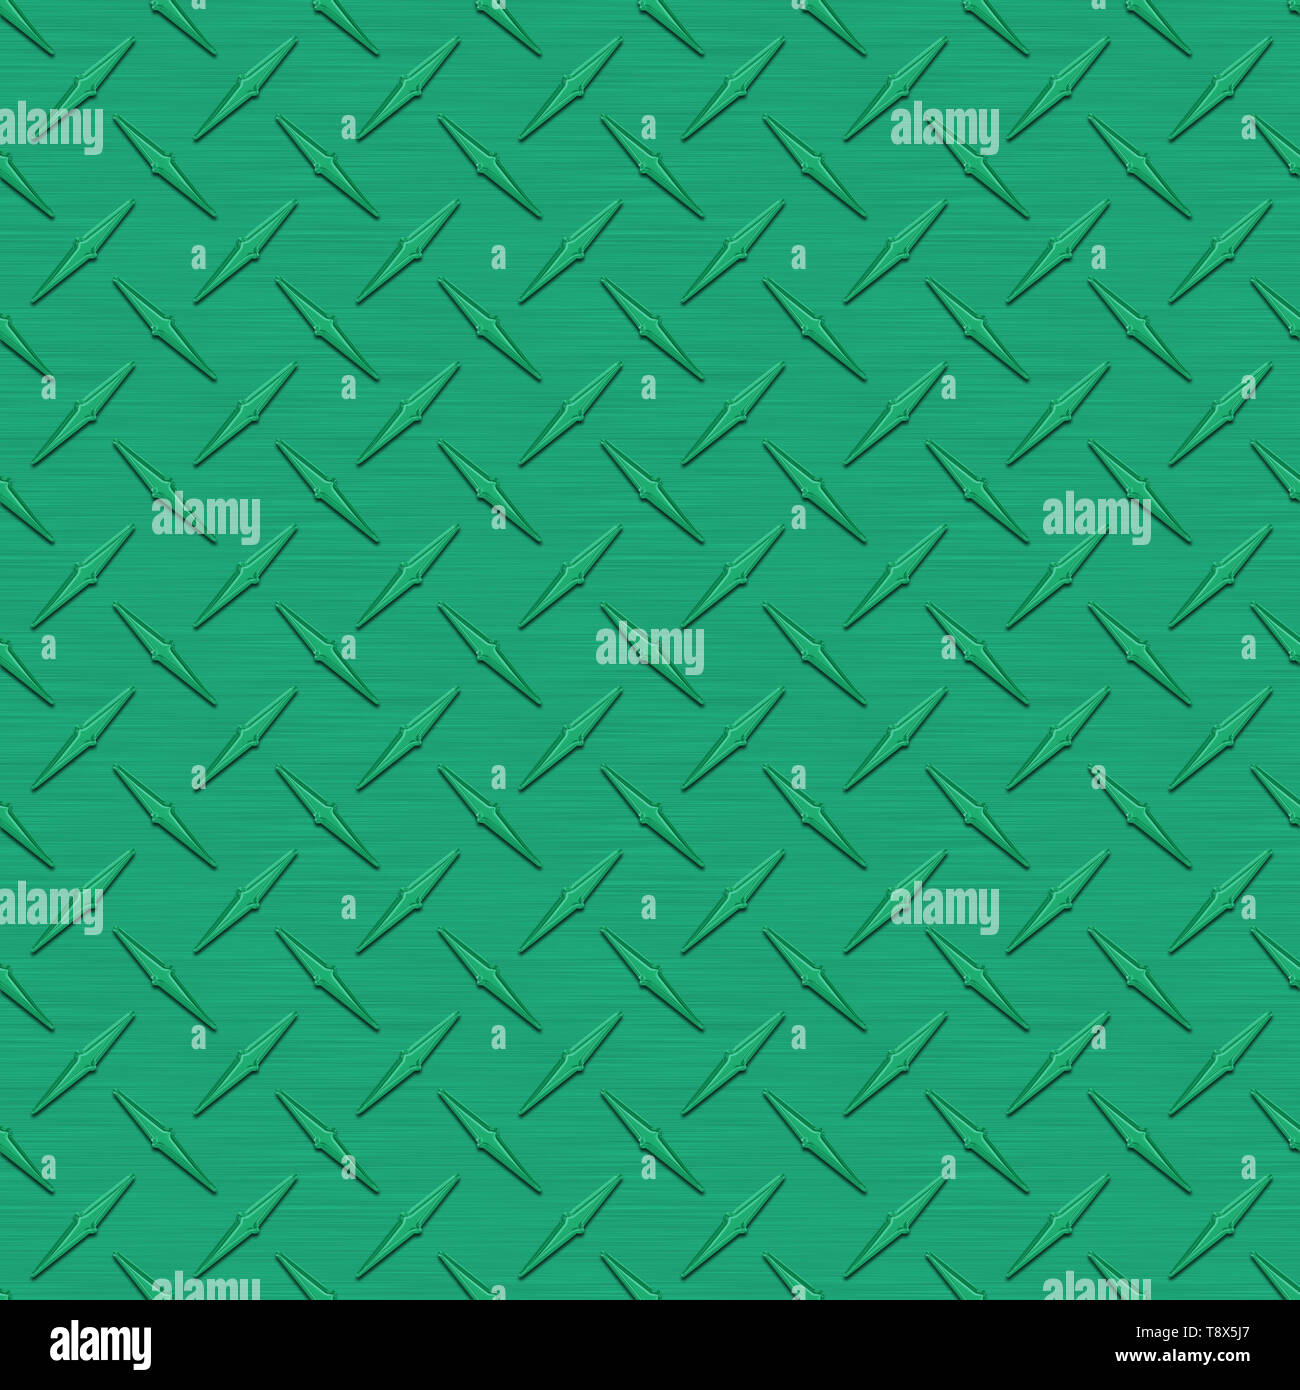 Medium Green Diamond Plate Metal Seamless Texture Tile - Stock Image